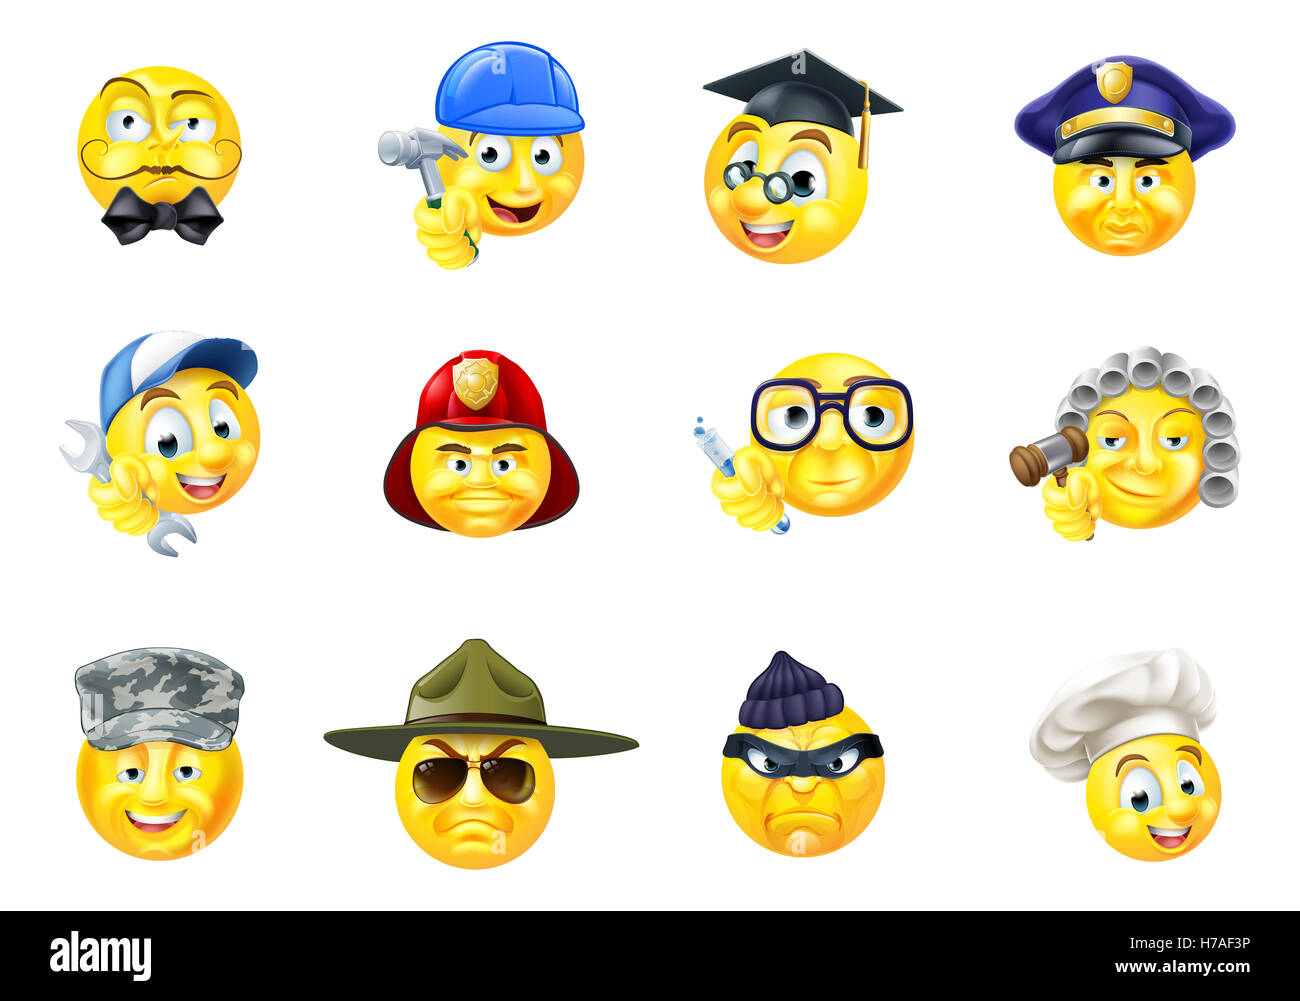 Professor And Policeman >> A set of emoji emoticon cartoon character face icons of different Stock Photo: 125006554 - Alamy